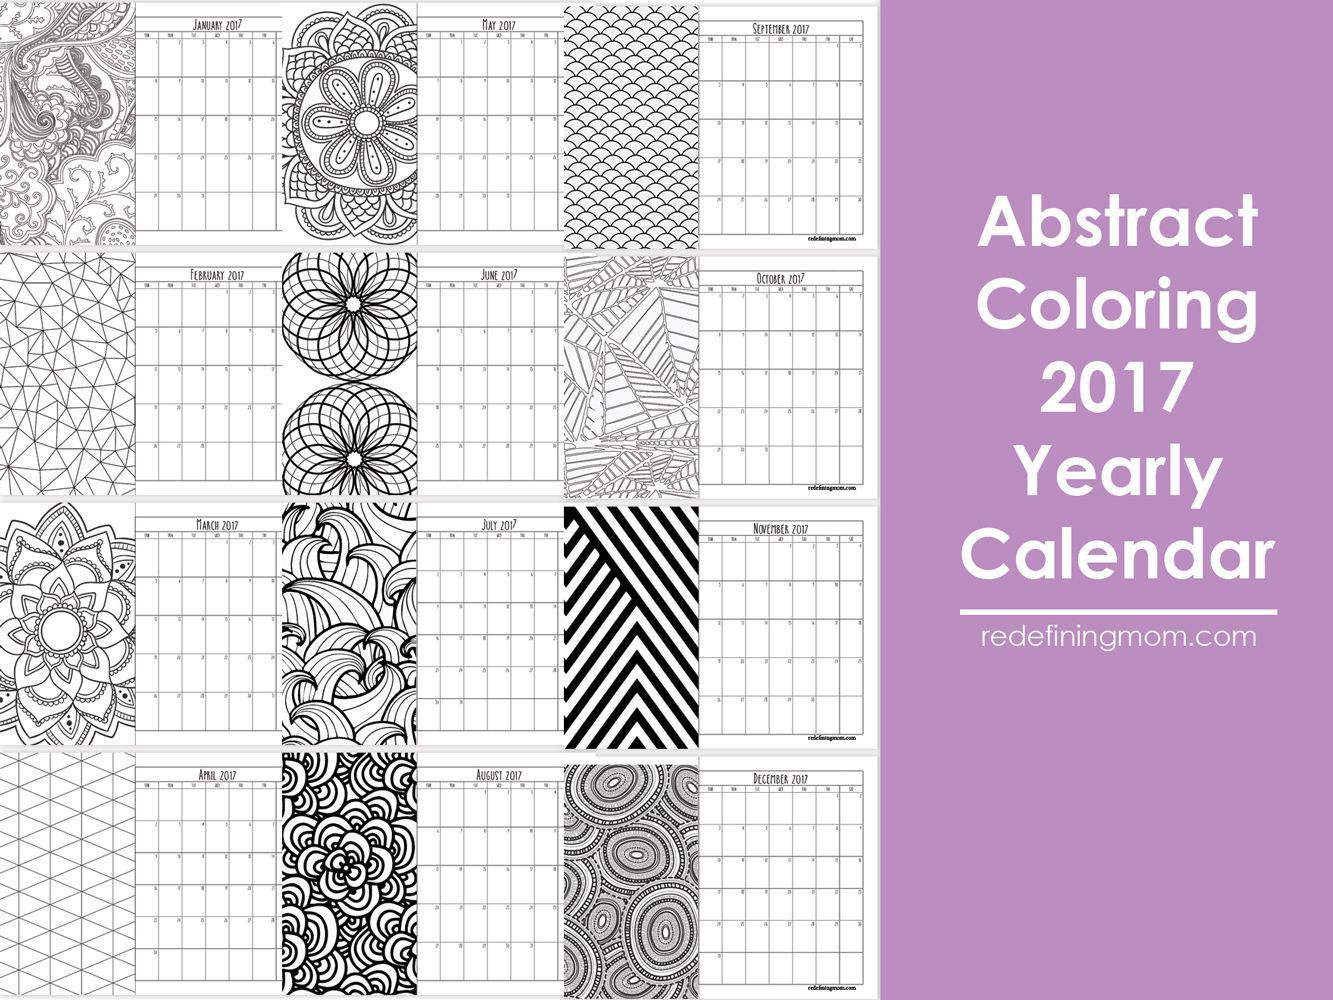 Abstract Adult Coloring 2017 Calendar